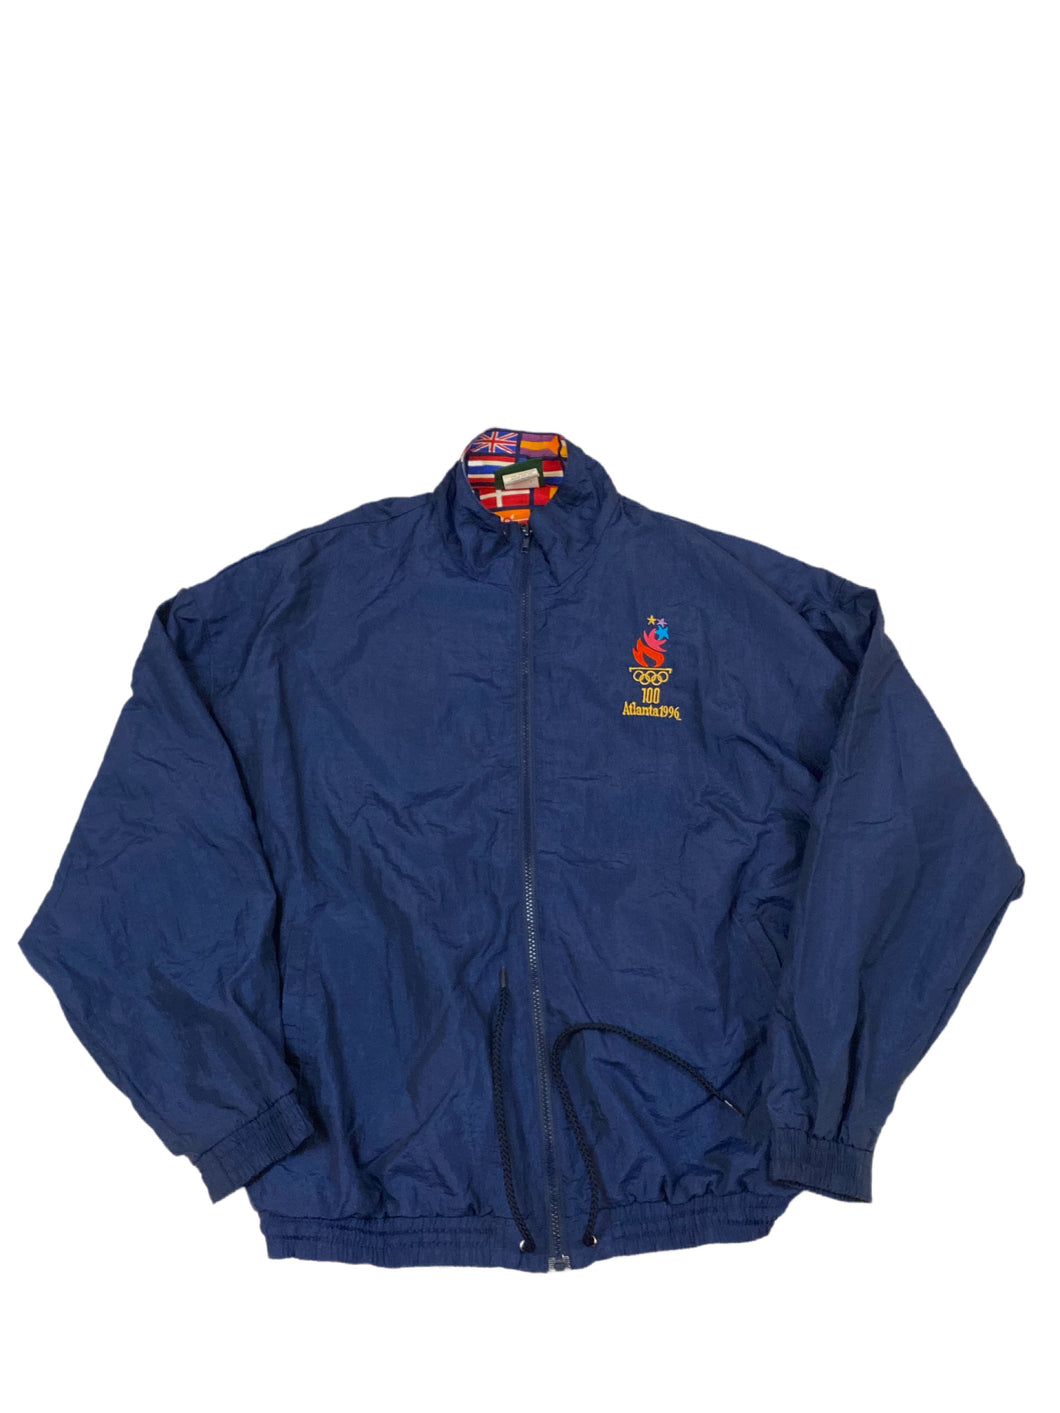 1996 Atlanta Olympics Windbreaker